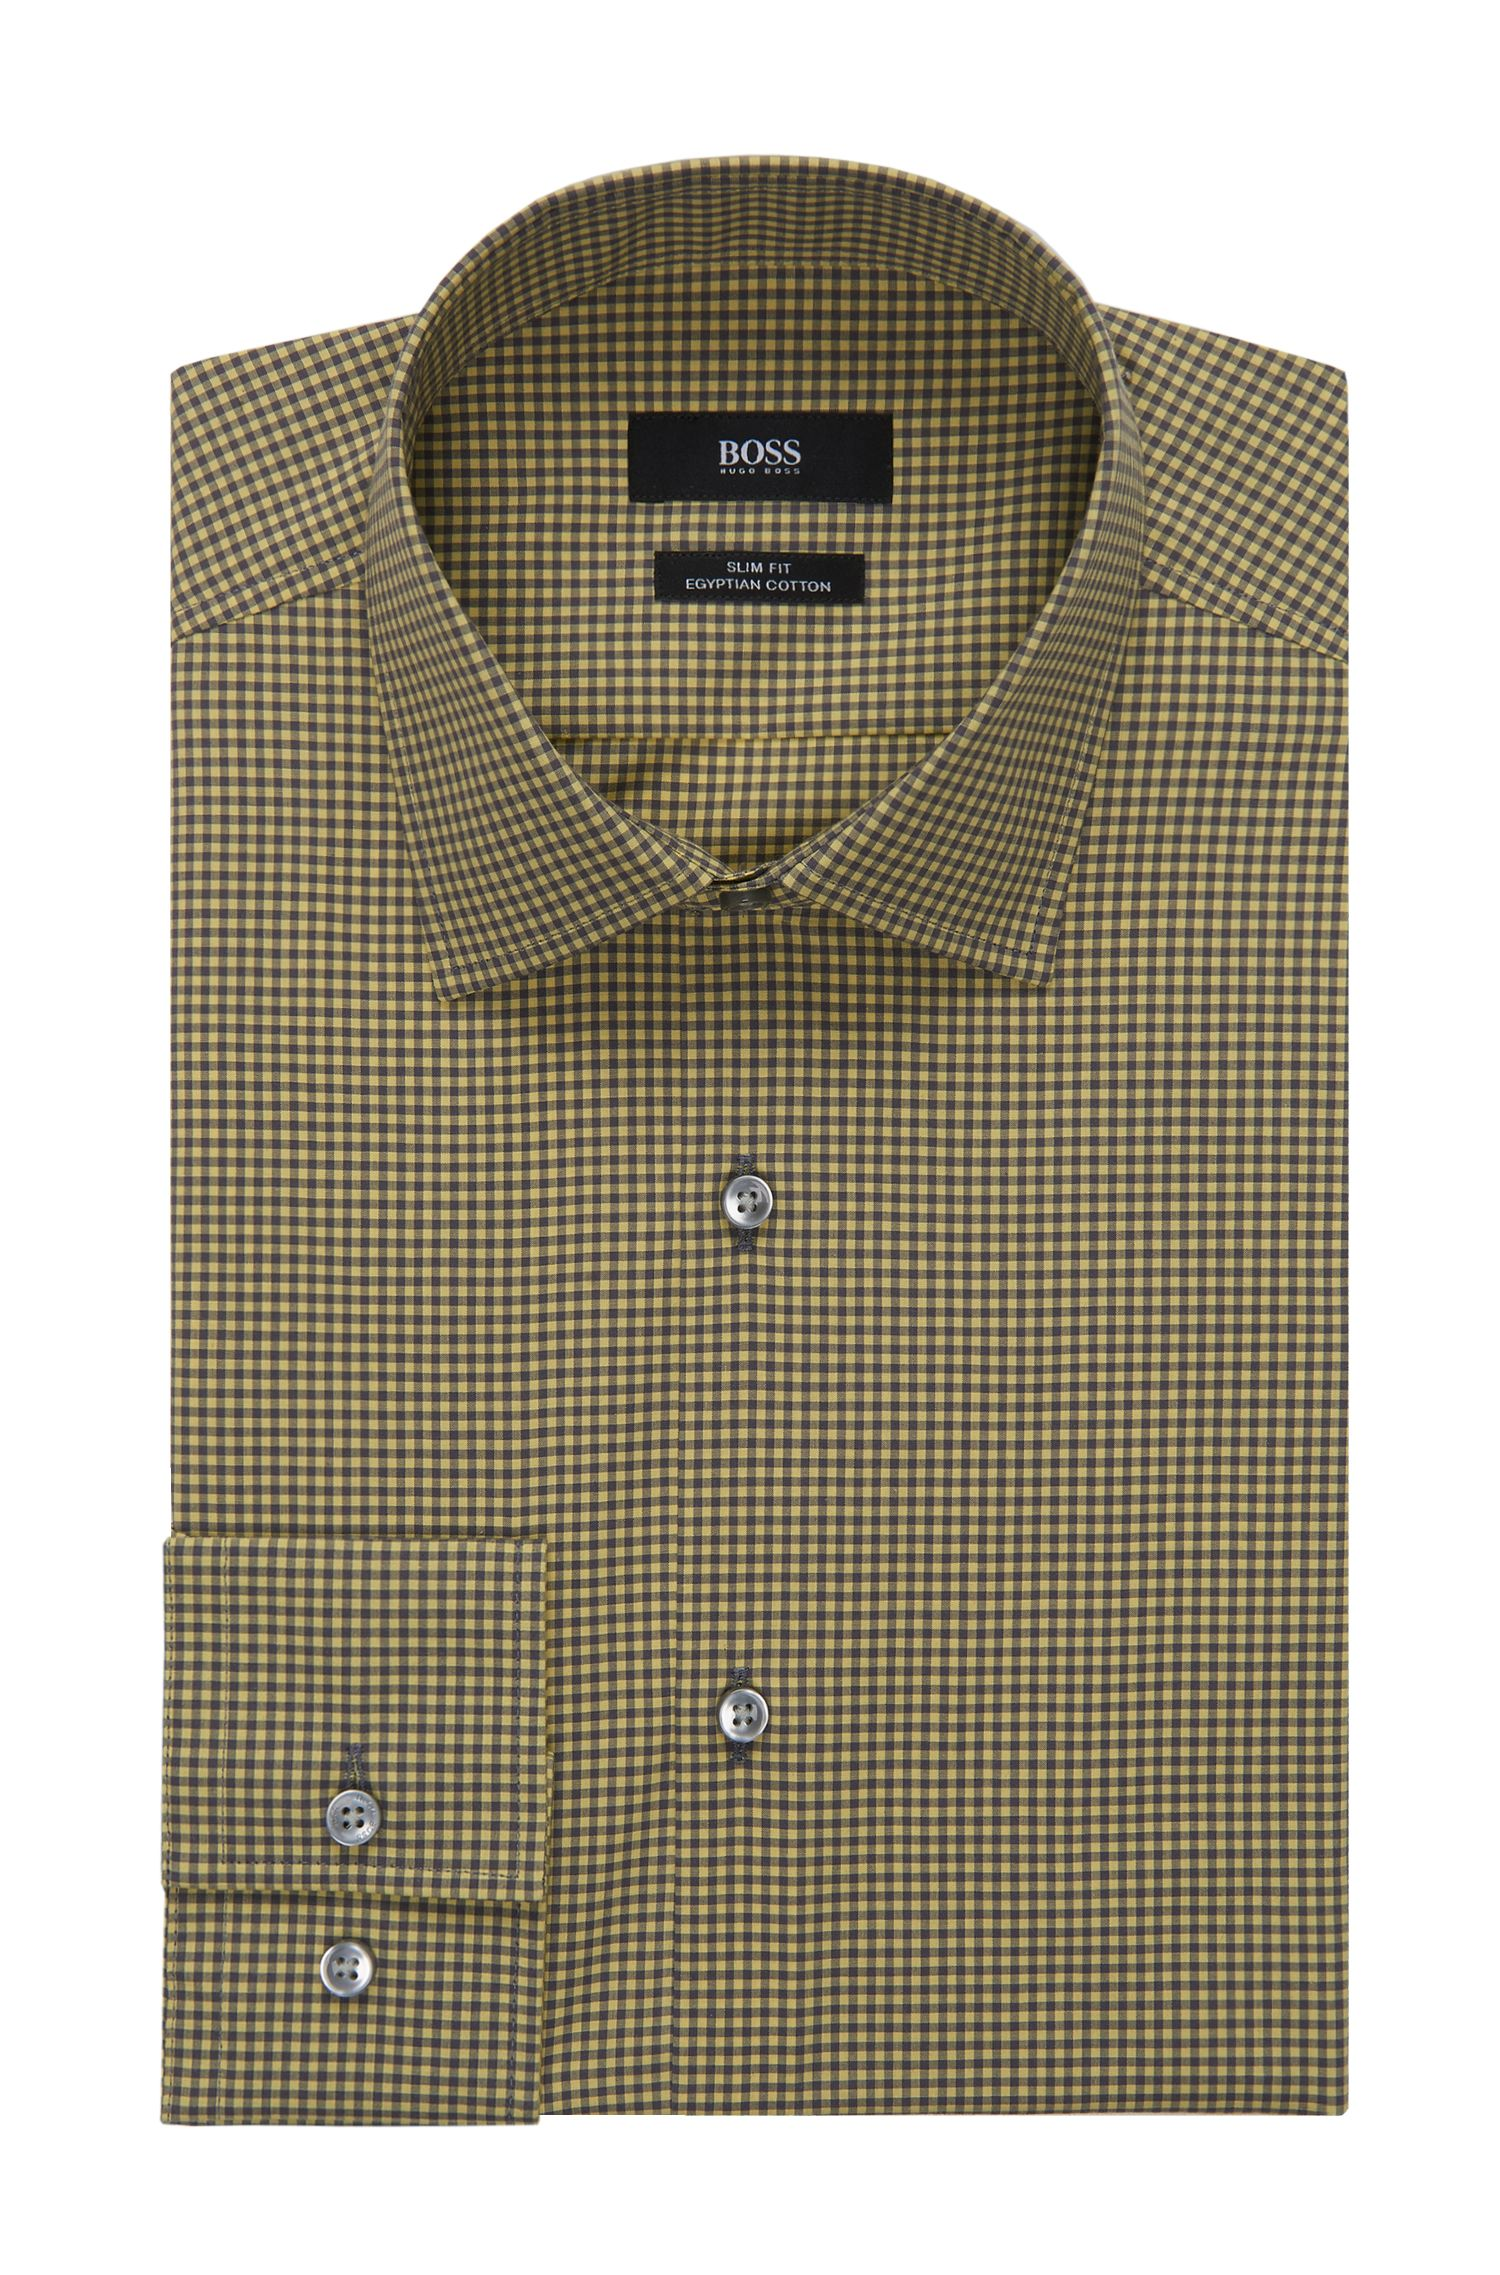 Gingham Egyptian Cotton Dress Shirt, Slim Fit | Jenno